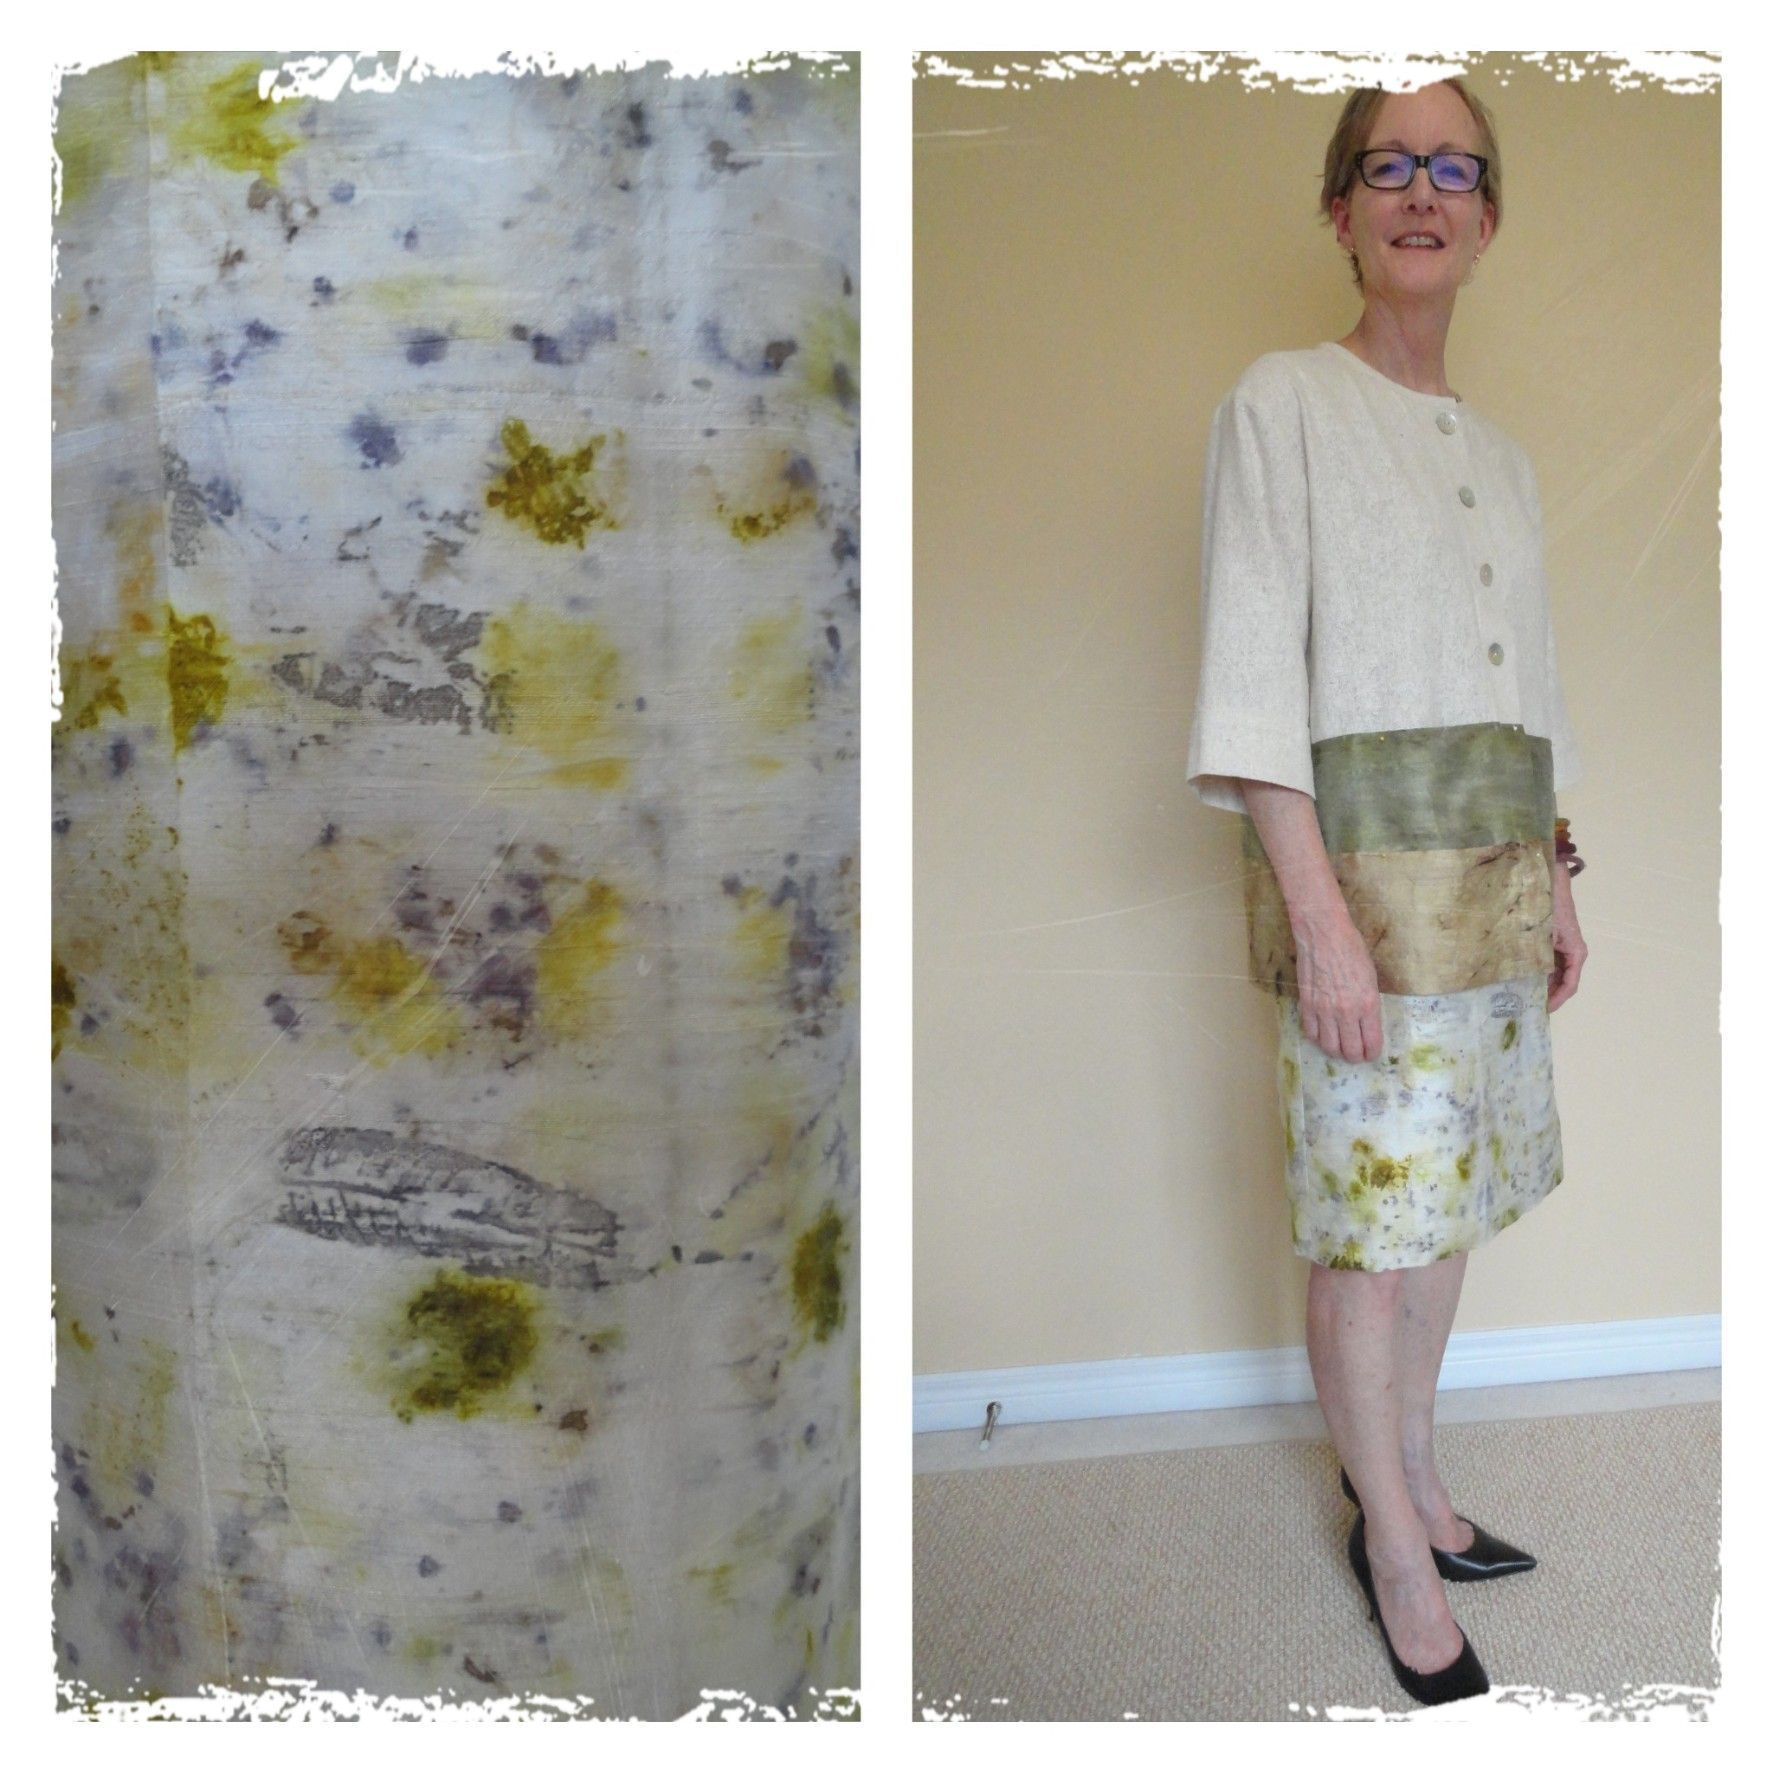 This #custommade #motherofthebride #dress is absolutely sumptuous. #Handmade #natural #dye #flowers #textiles #wedding